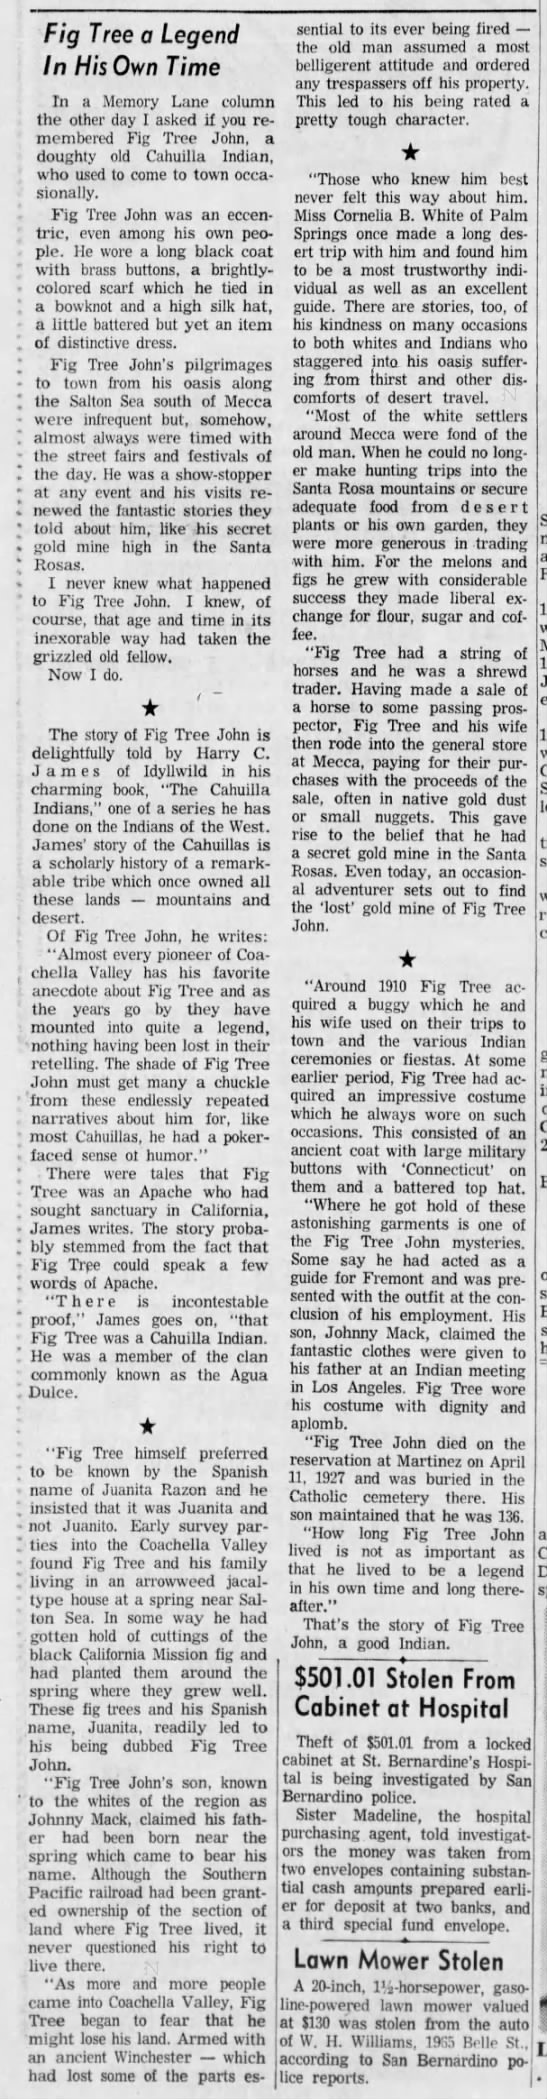 fig tree legend in his own time august 6, 1961 -